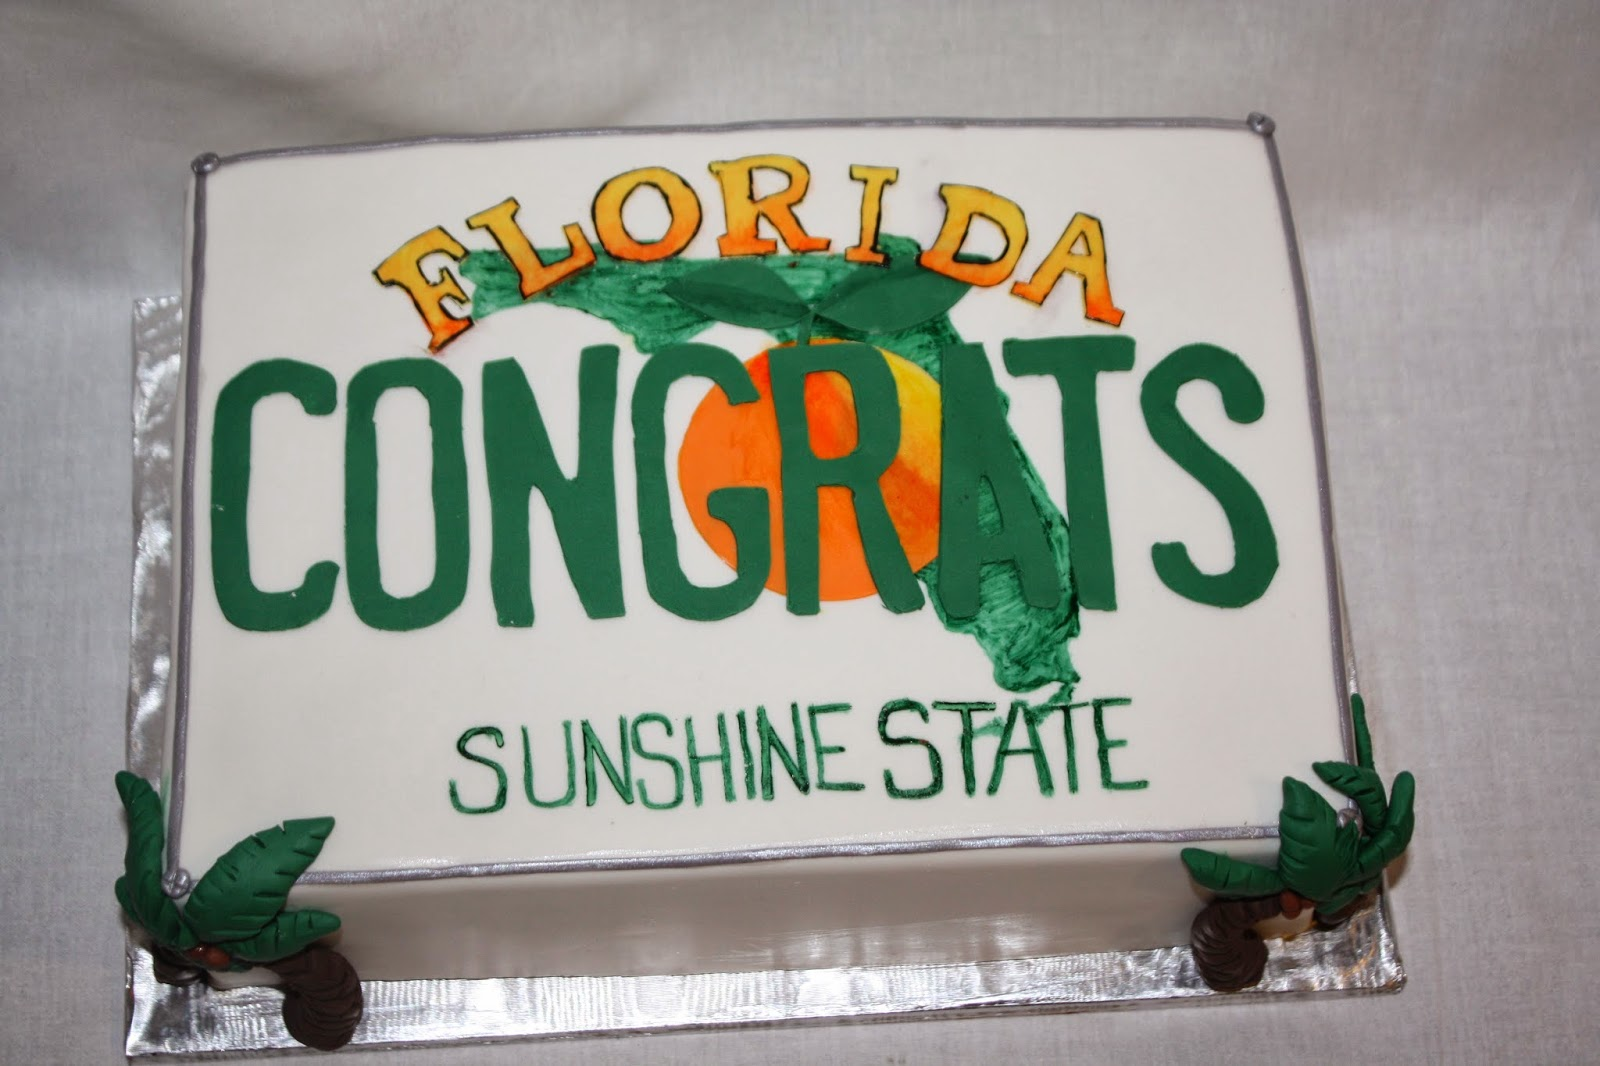 Florida License Plate Cake & Hock Cakes LLC: Florida License Plate Cake